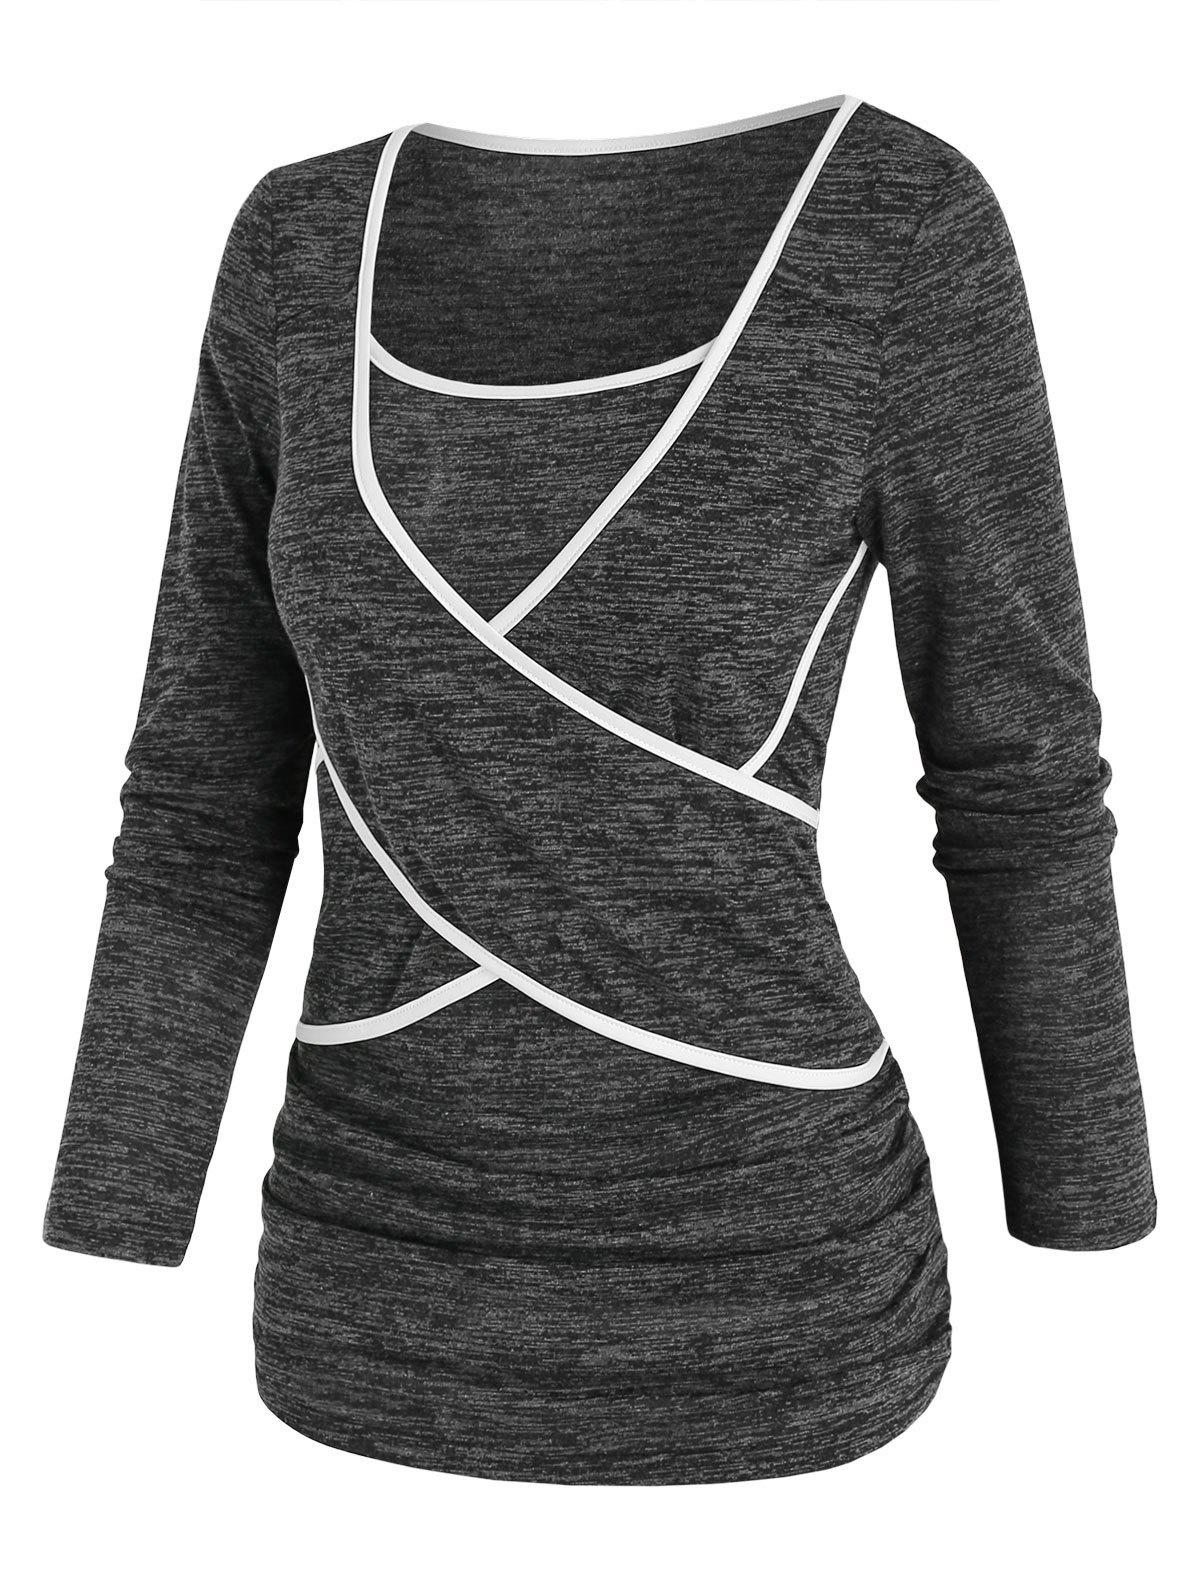 Affordable Two Tone Space Dye Criss Cross T Shirt